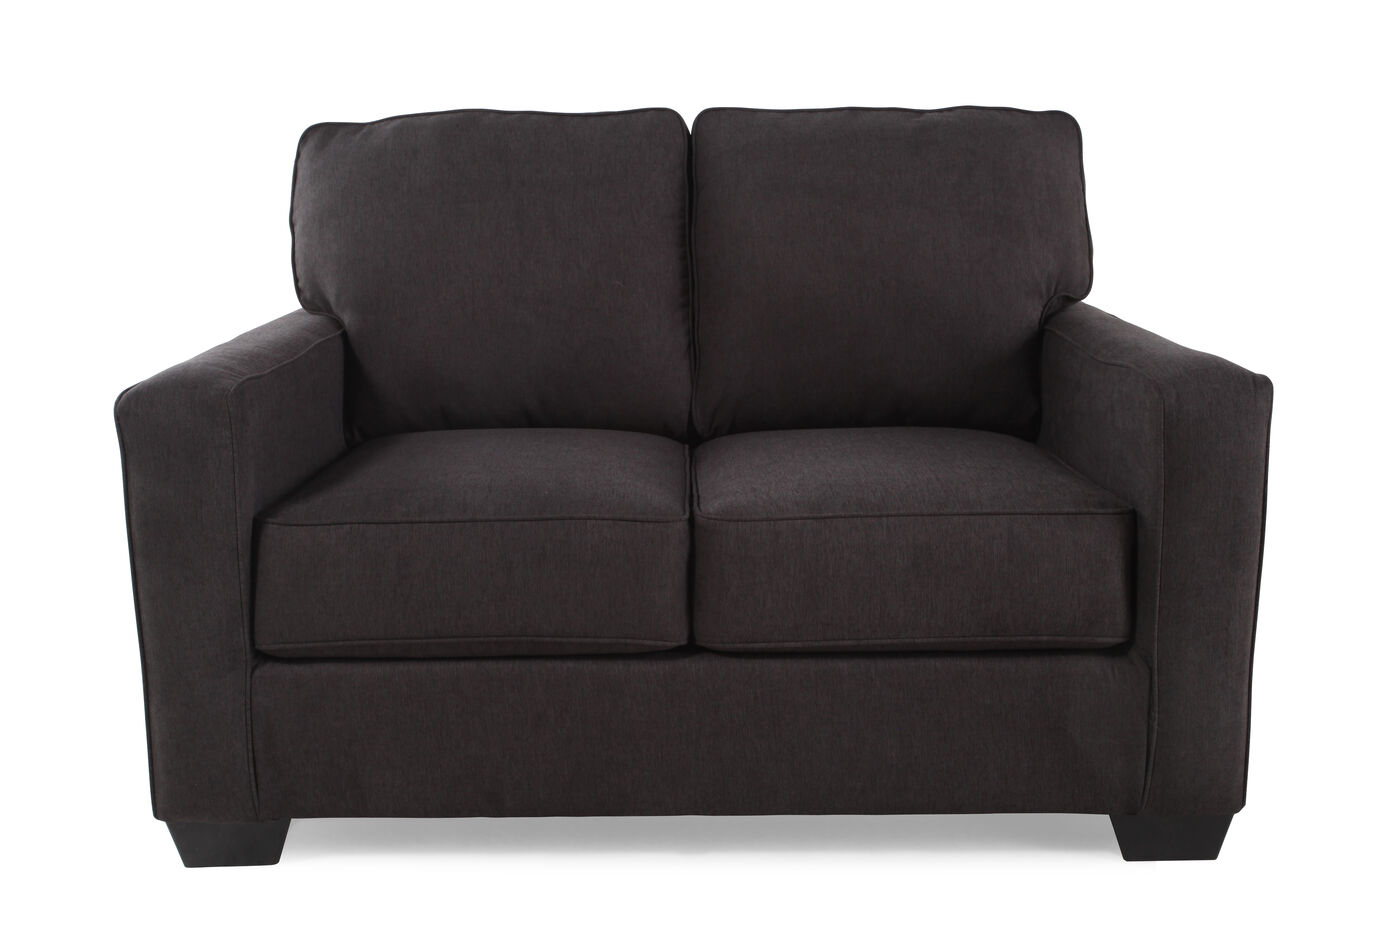 Contemporary 55 Twin Sleeper Loveseat In Charcoal Gray Mathis Brothers Furniture